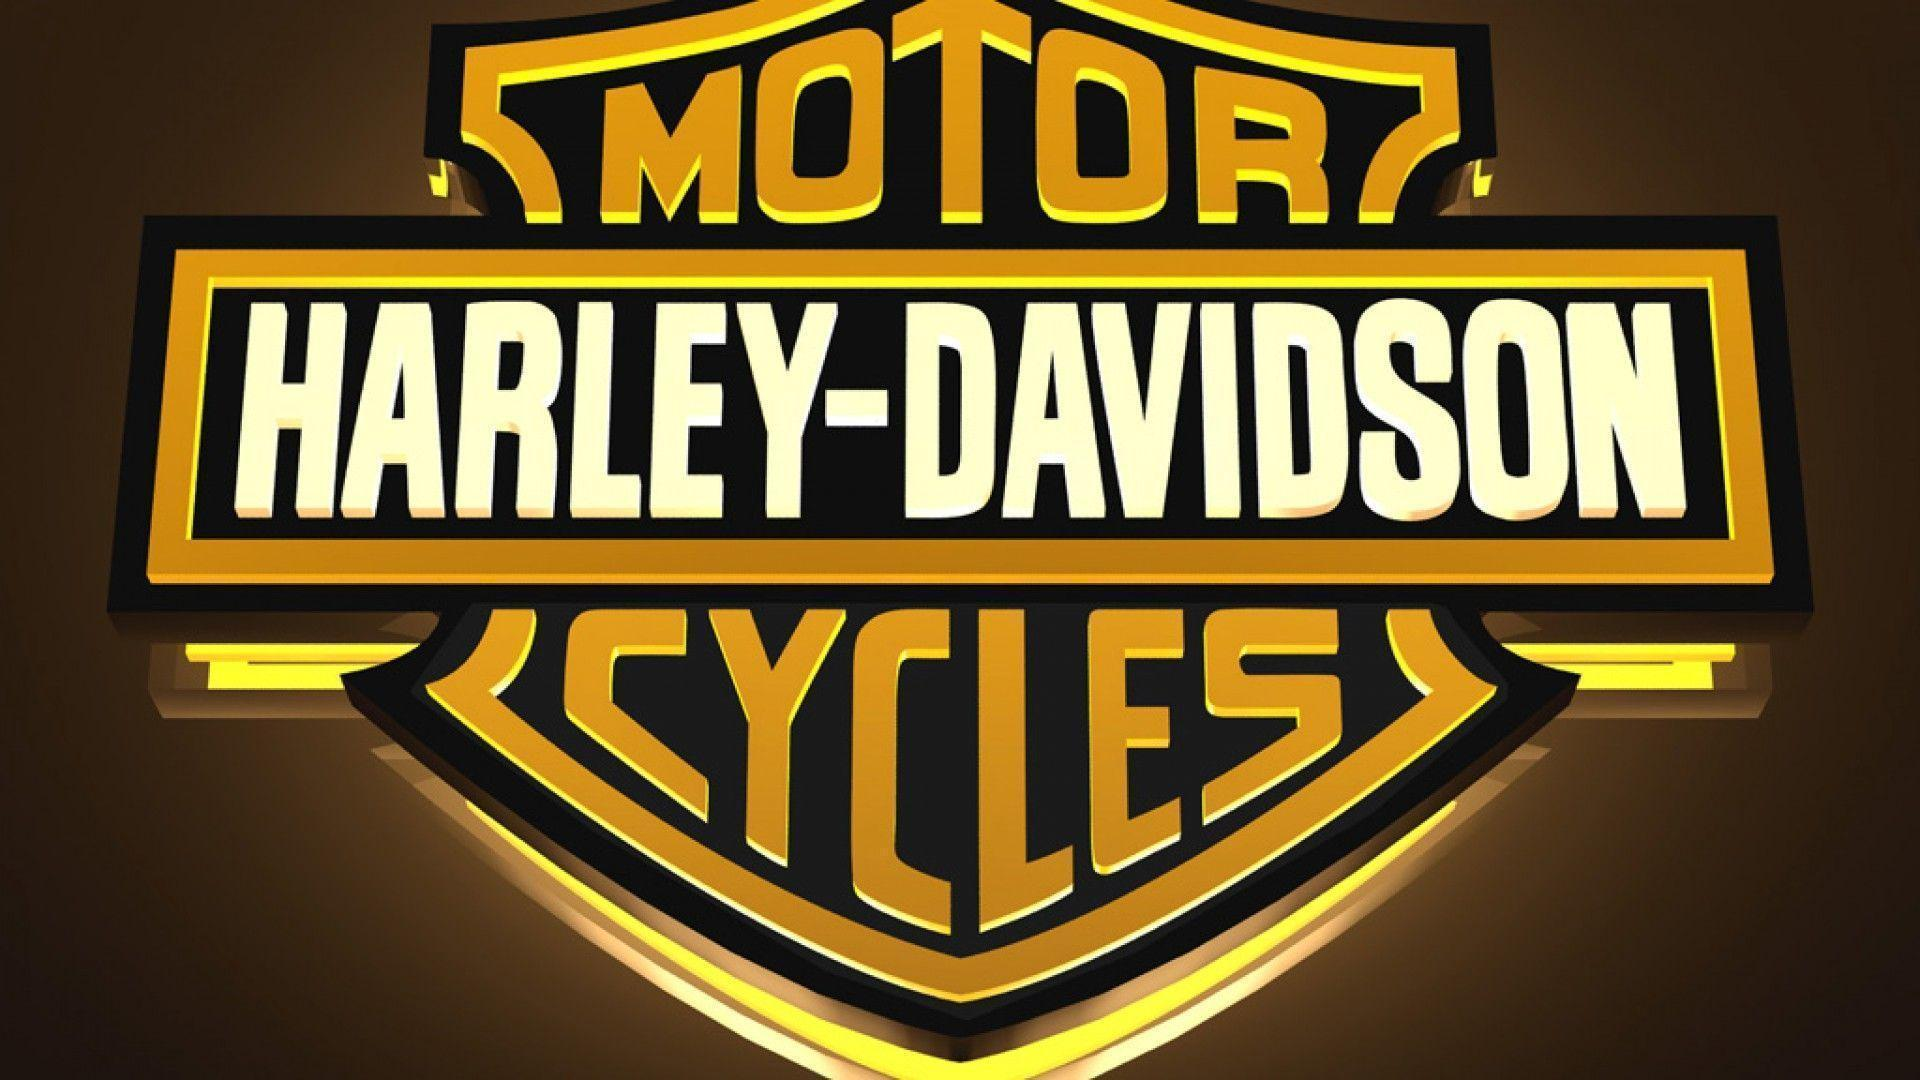 newest harley davidson logo wallpapers - photo #24